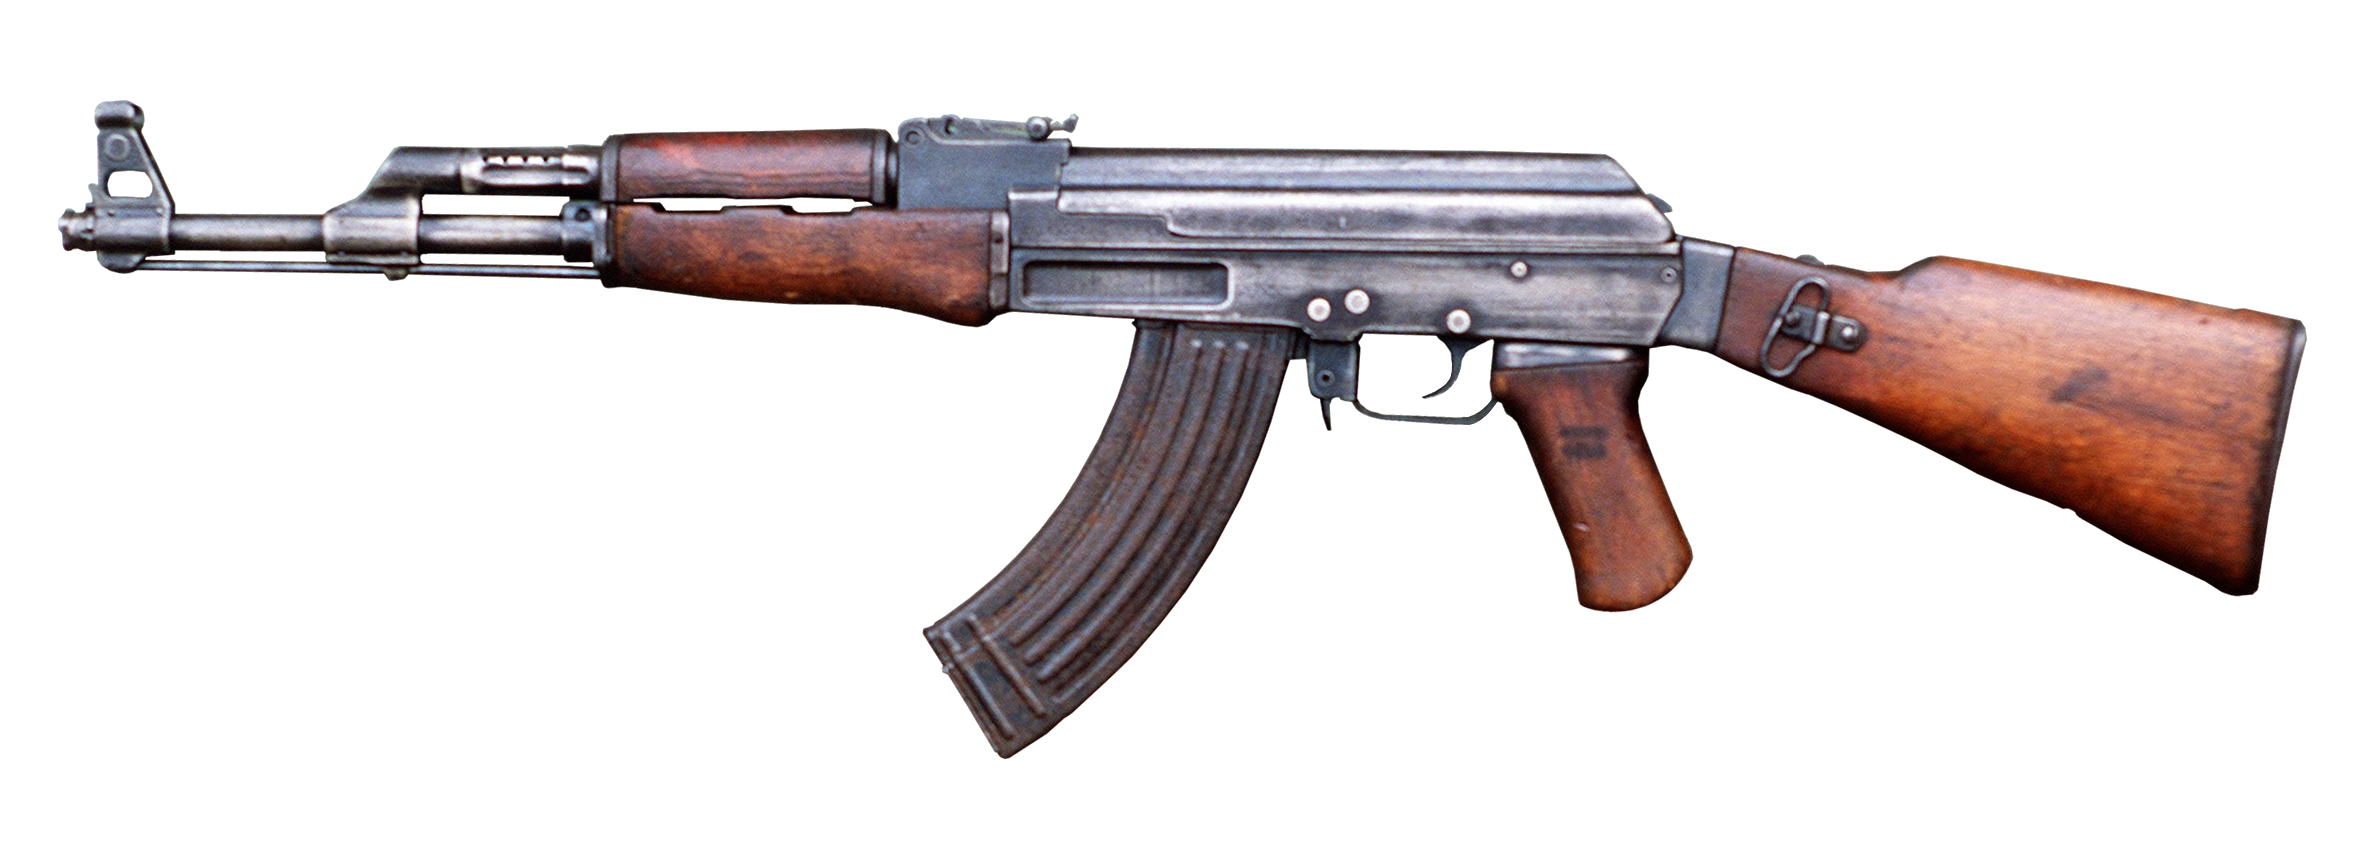 Long clip ak47. Ak png weapon reference